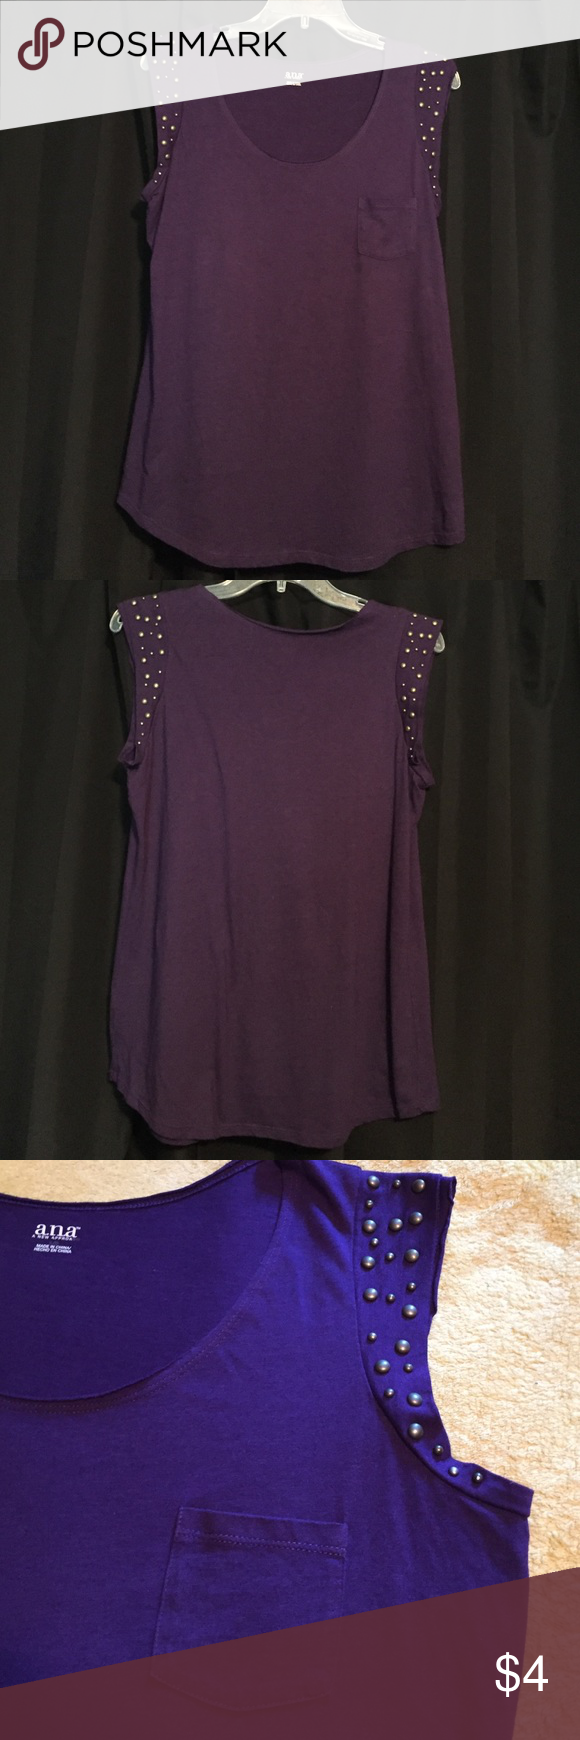 Purple top Purple sleeveless top. Armpit to armpit 19 inches. Center back to him 25 inches. 60% cotton 40% polyester. a.n.a Tops